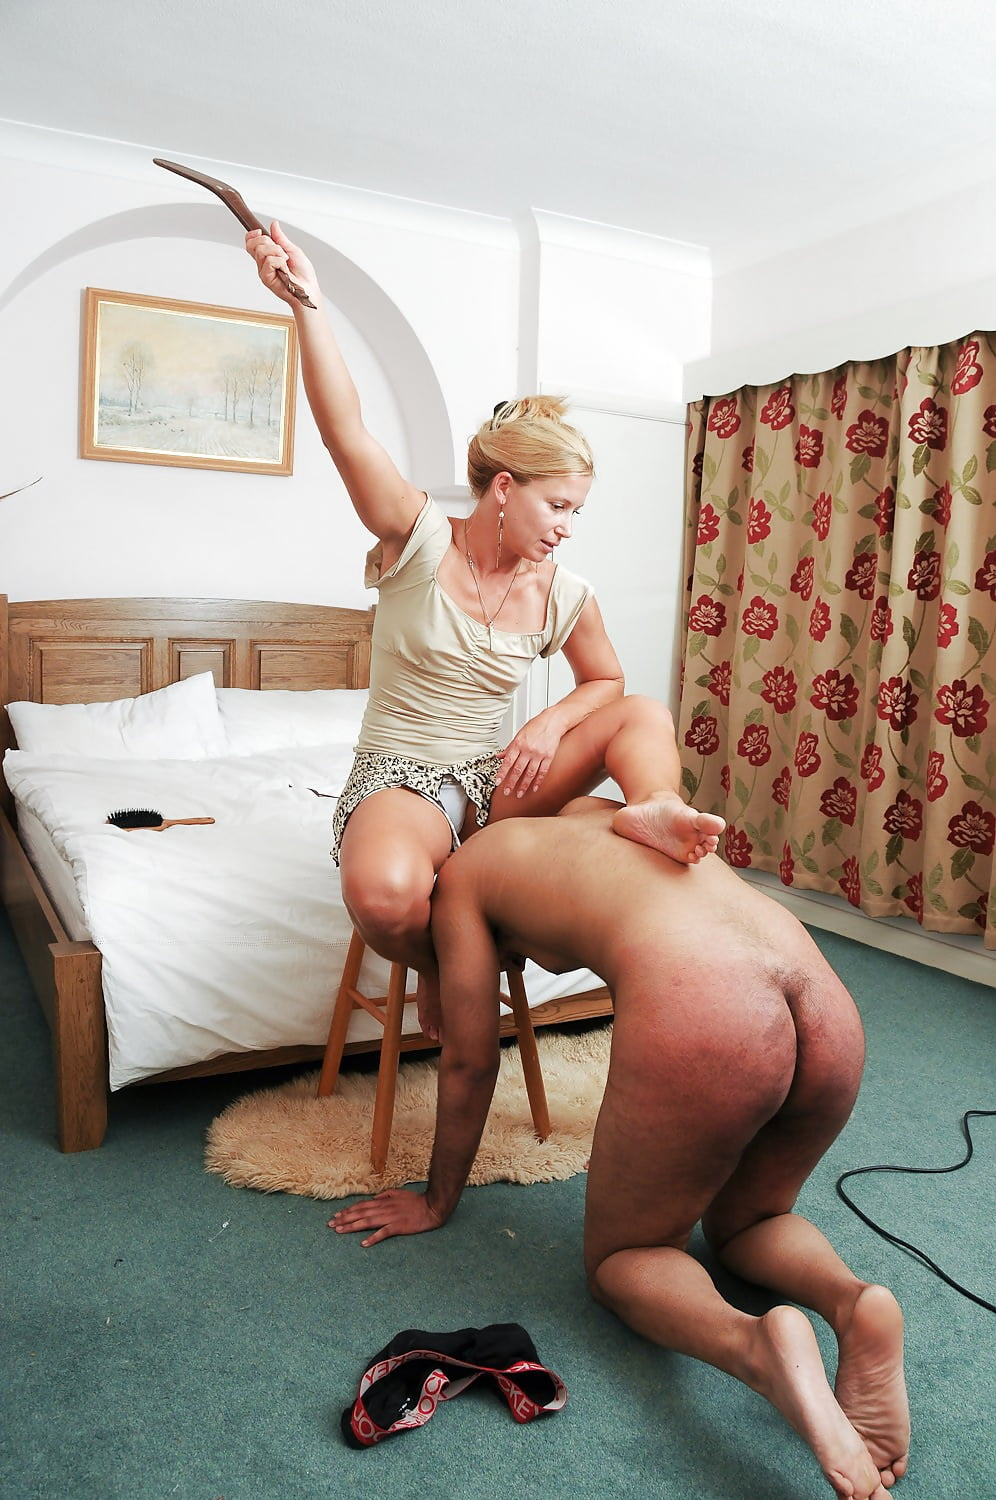 shaved-spanked-slave-husband-womens-golf-club-iron-petite